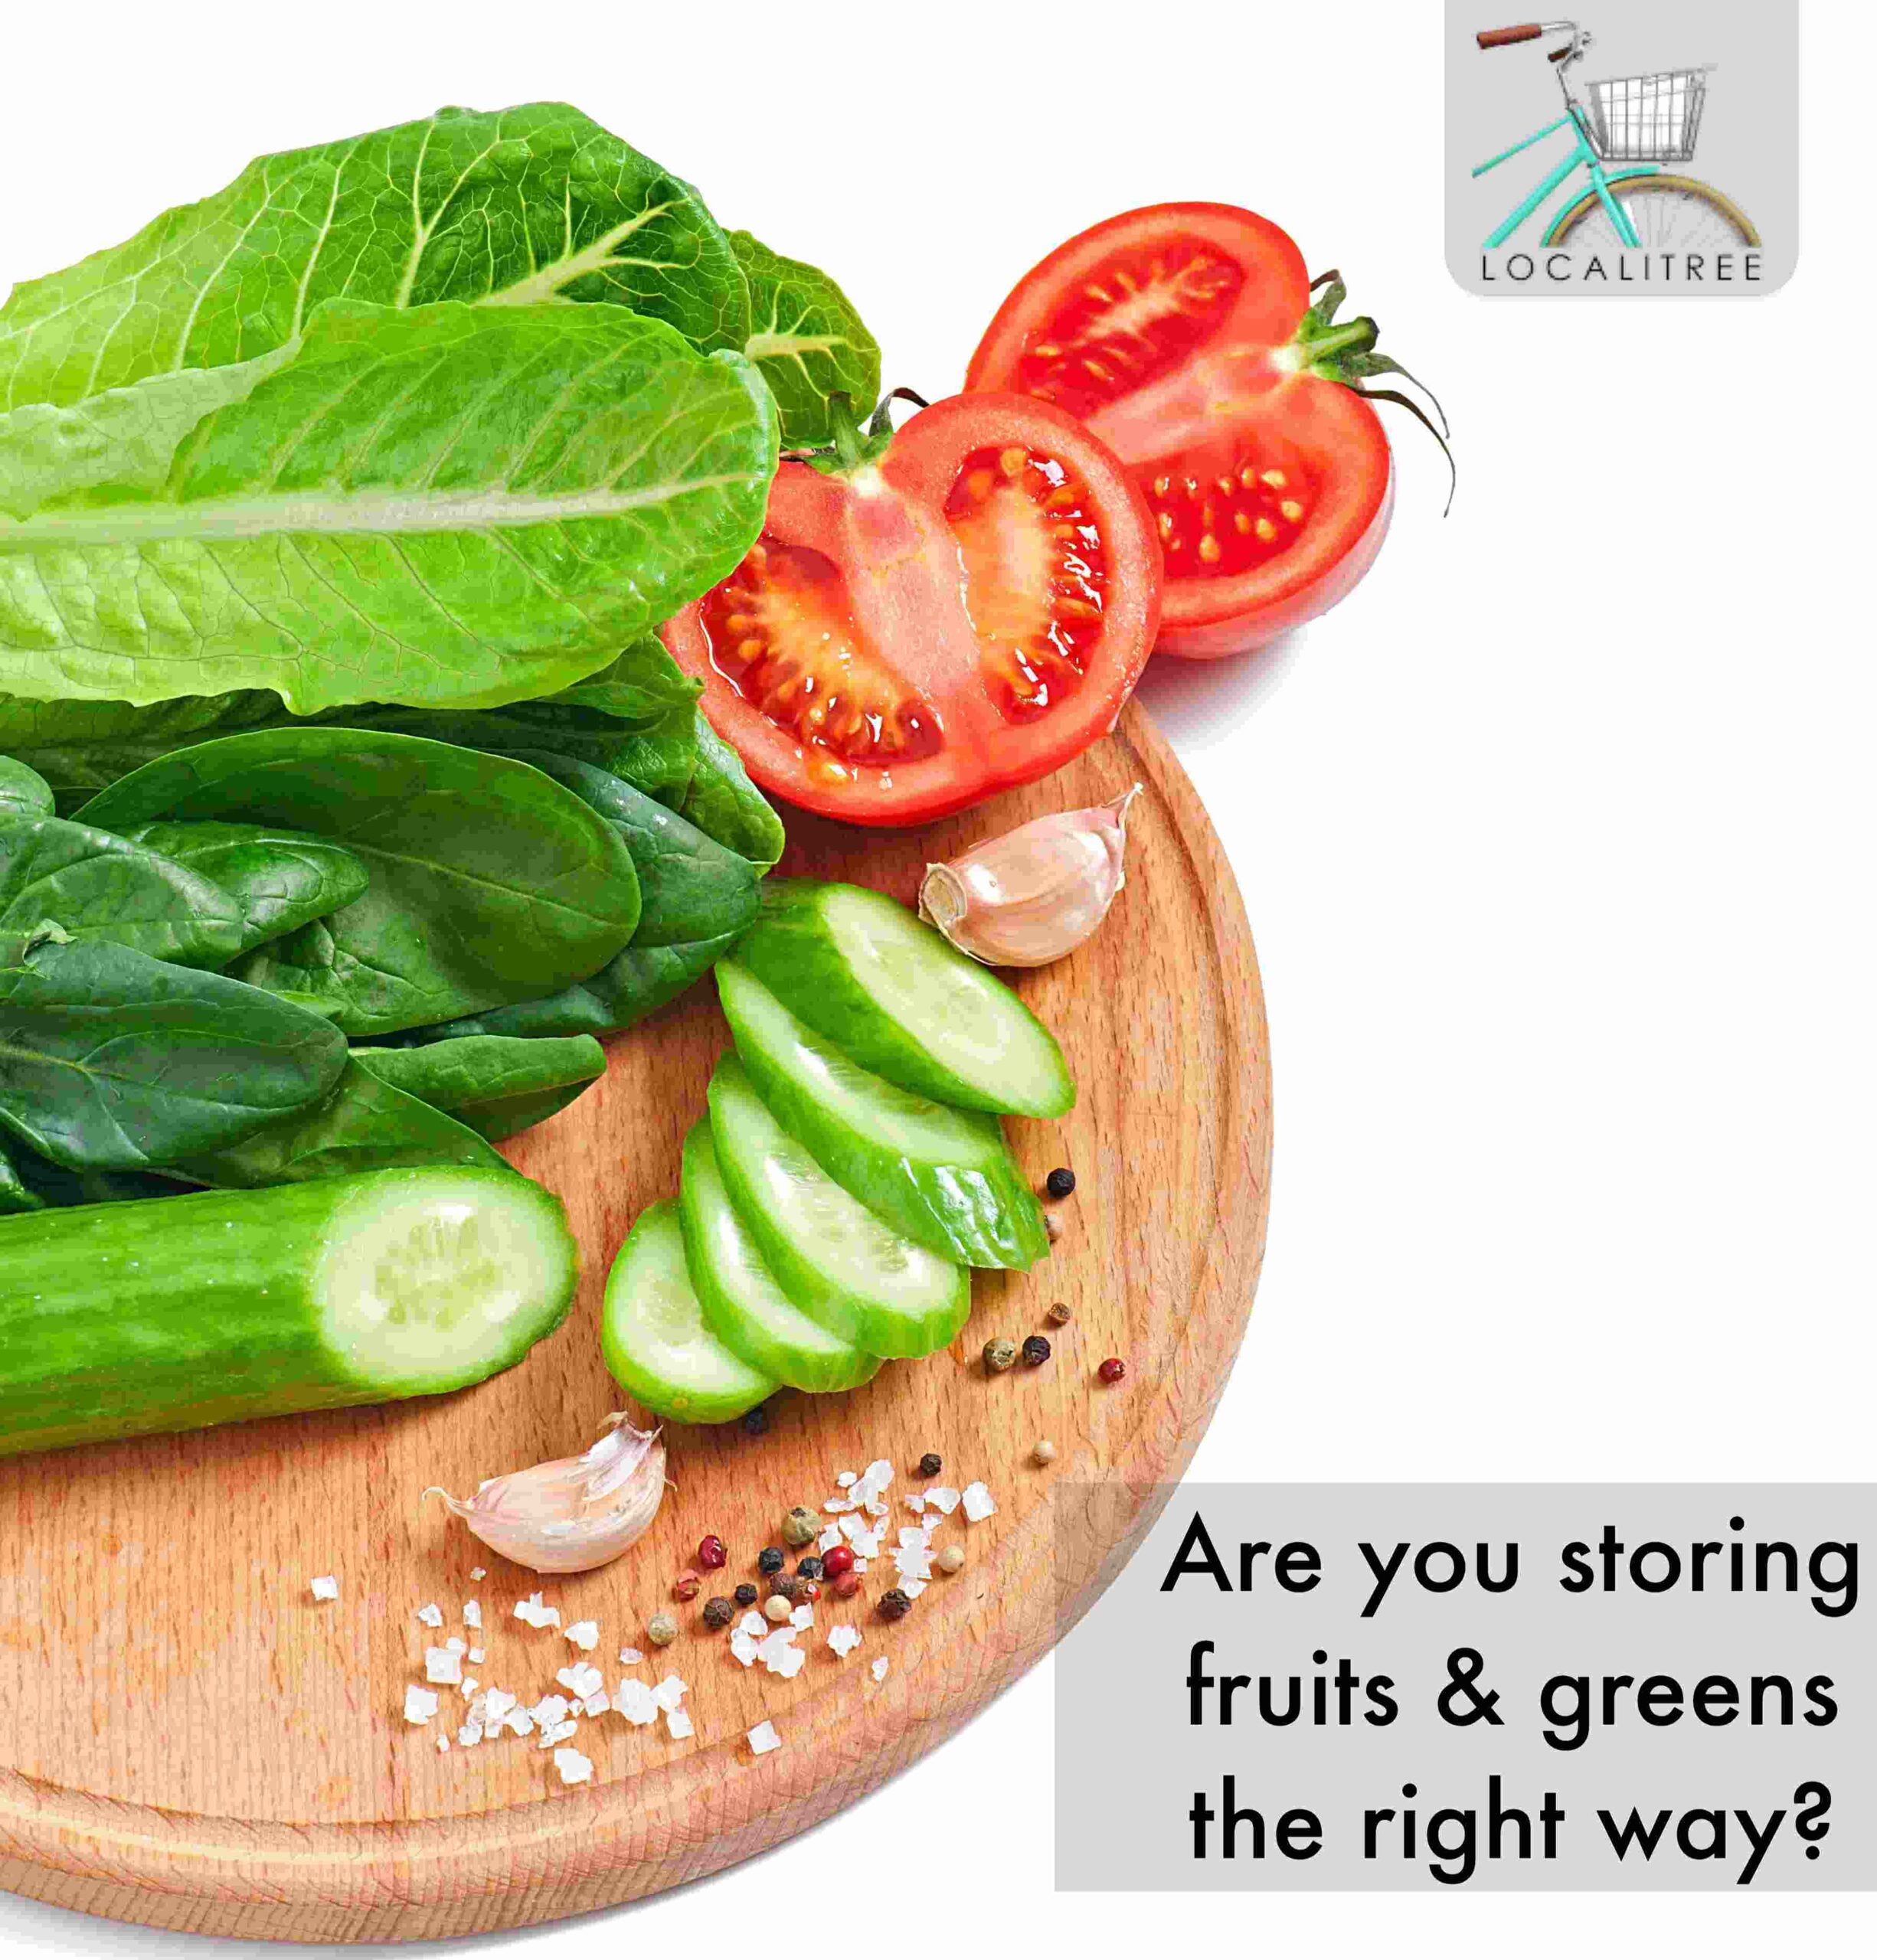 Are you storing fruits & greens the right way?